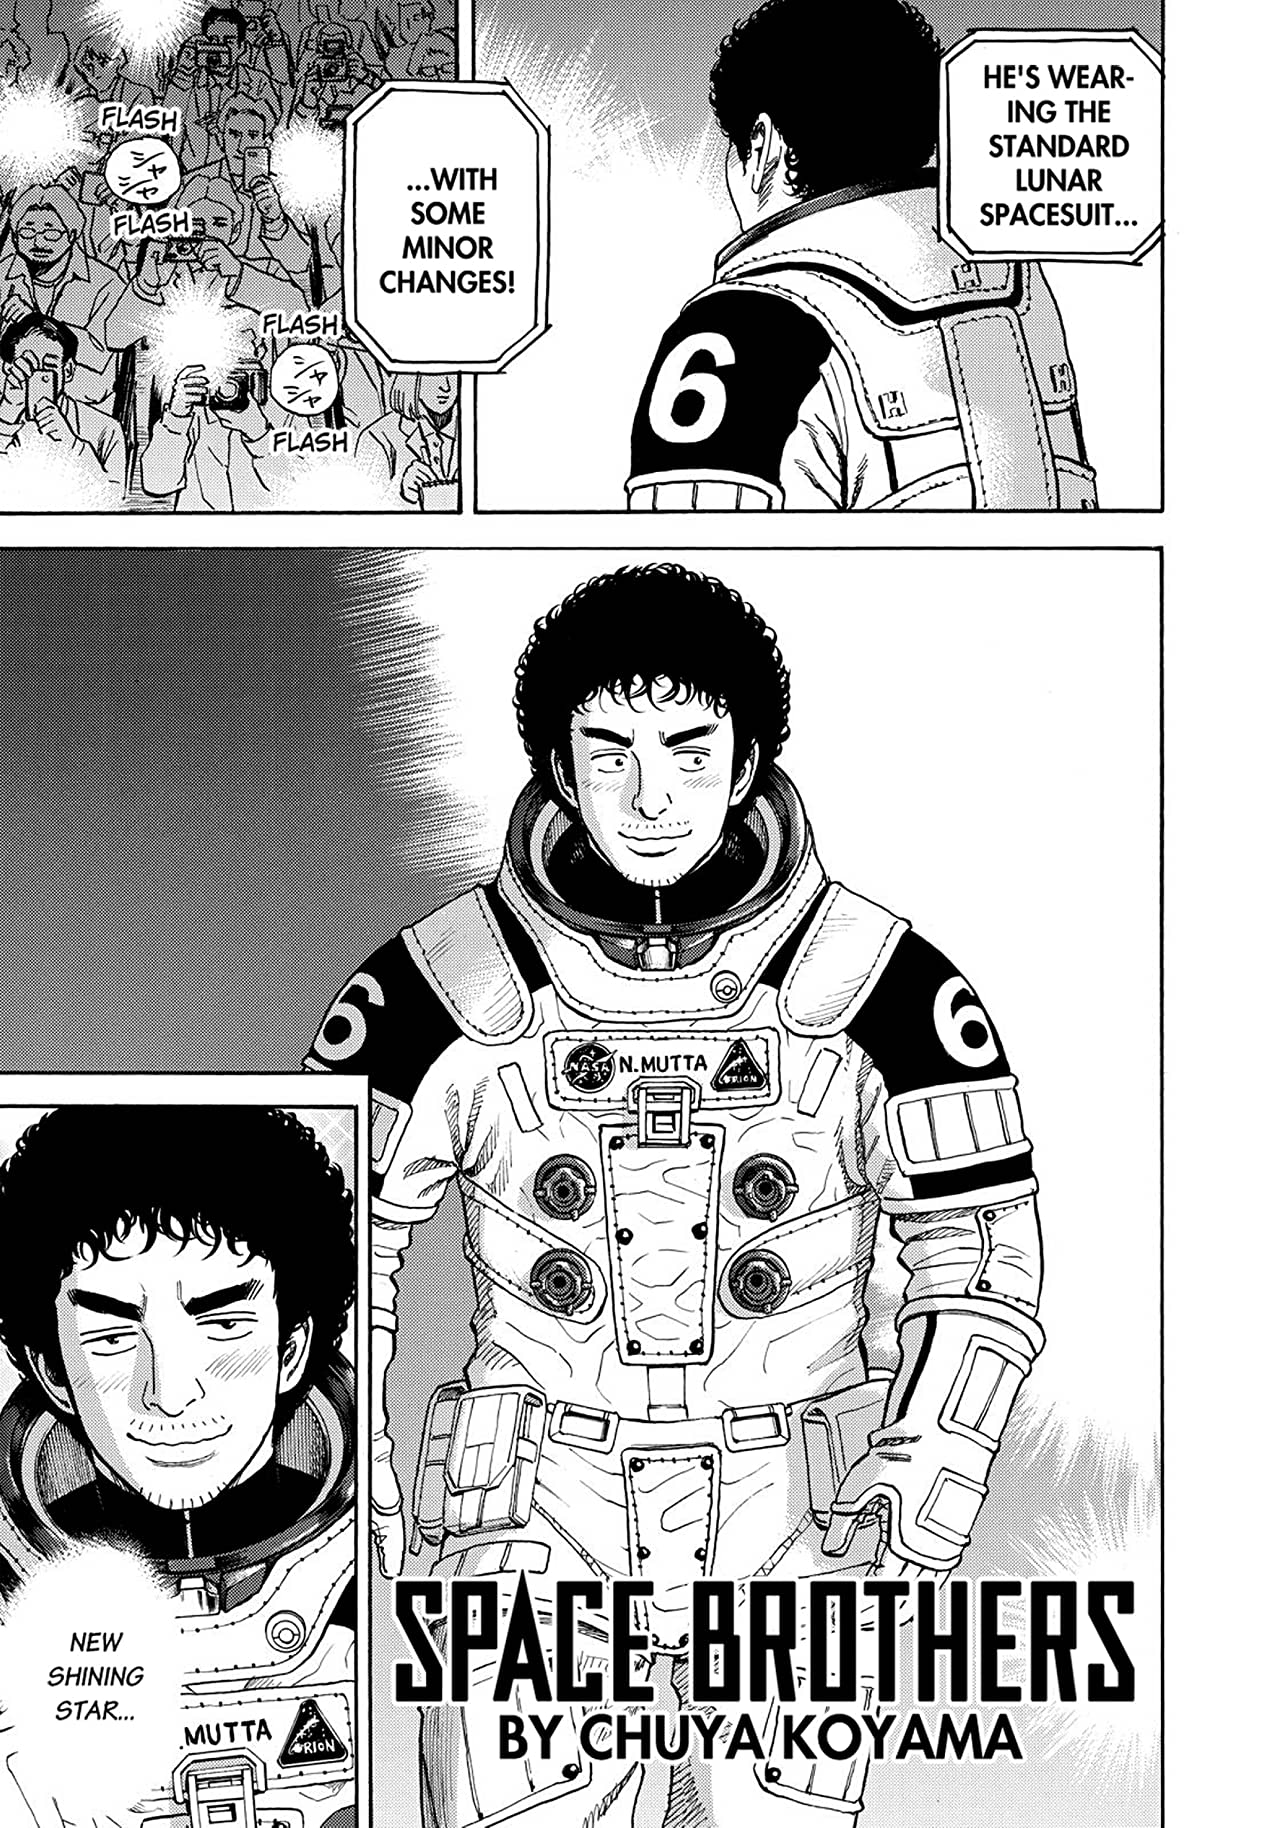 Space Brothers #235